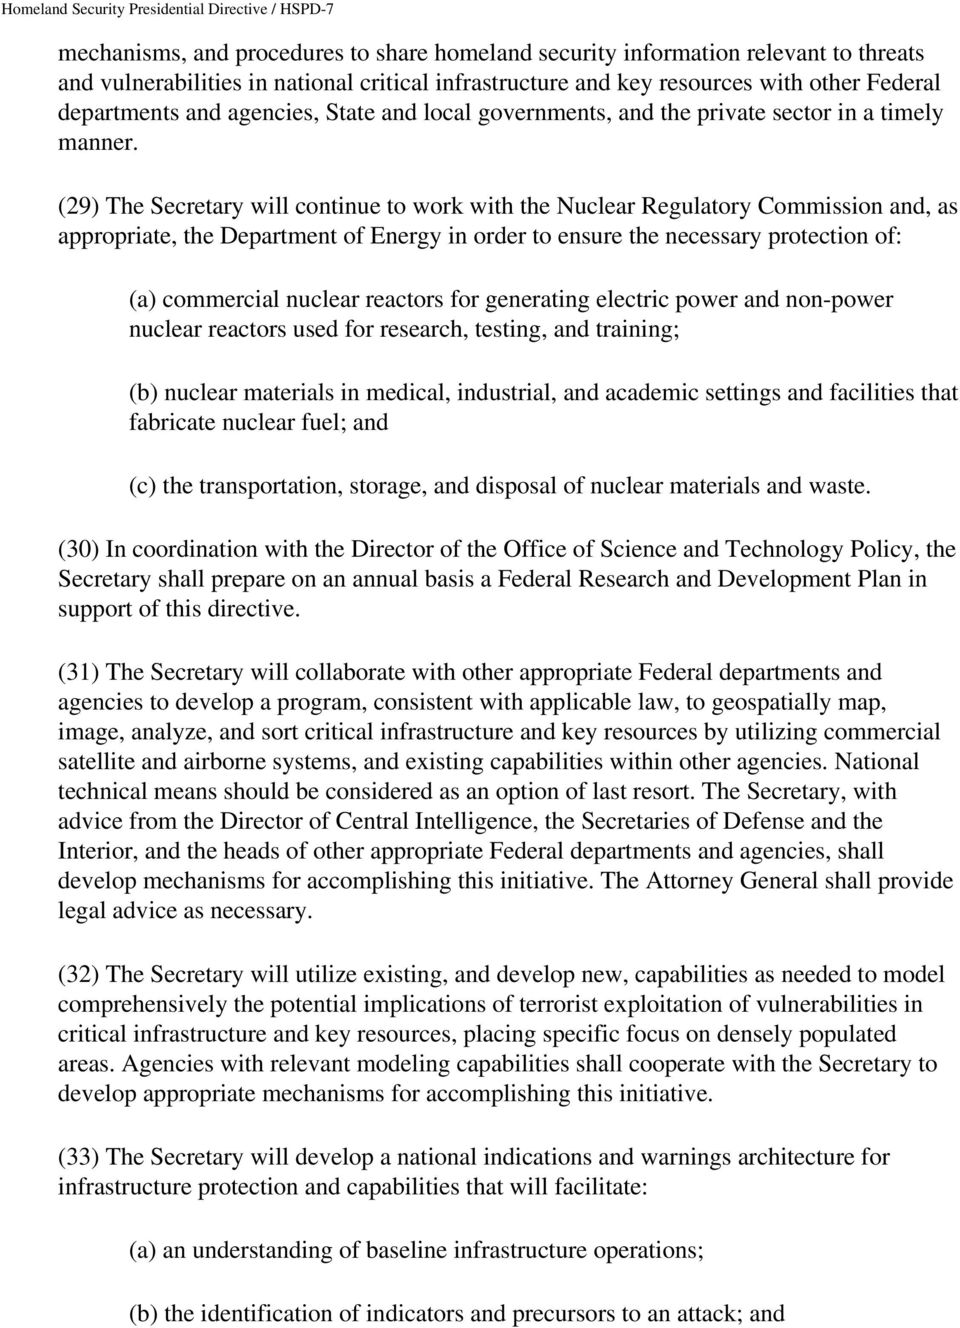 (29) The Secretary will continue to work with the Nuclear Regulatory Commission and, as appropriate, the Department of Energy in order to ensure the necessary protection of: (a) commercial nuclear